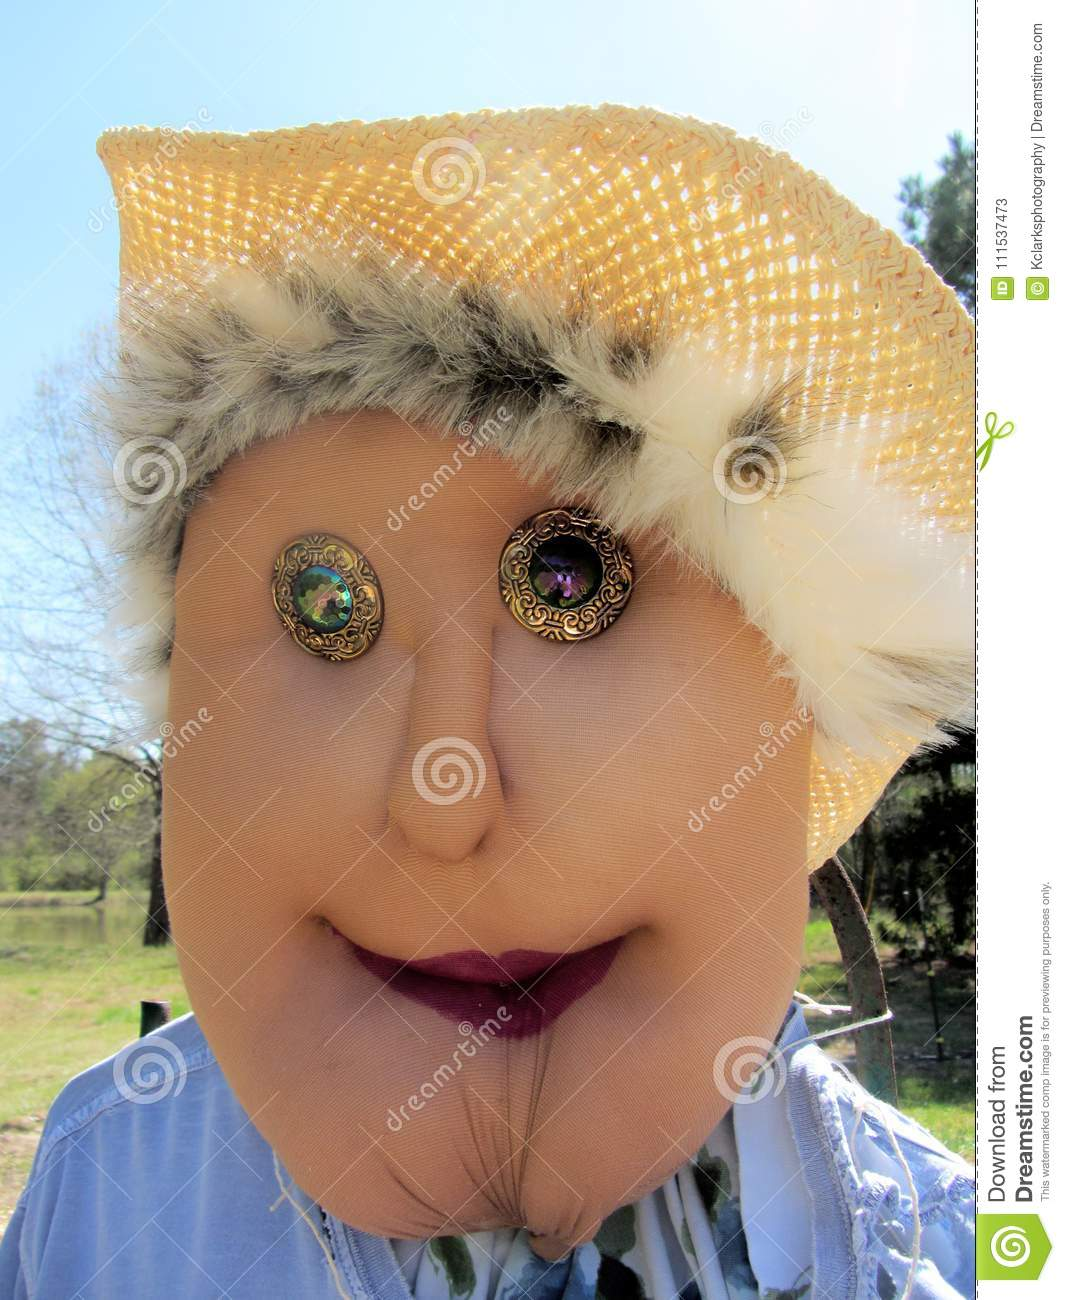 Ethel The Lady Garden Scarecrow Stock Image - Image of face, eyes ...